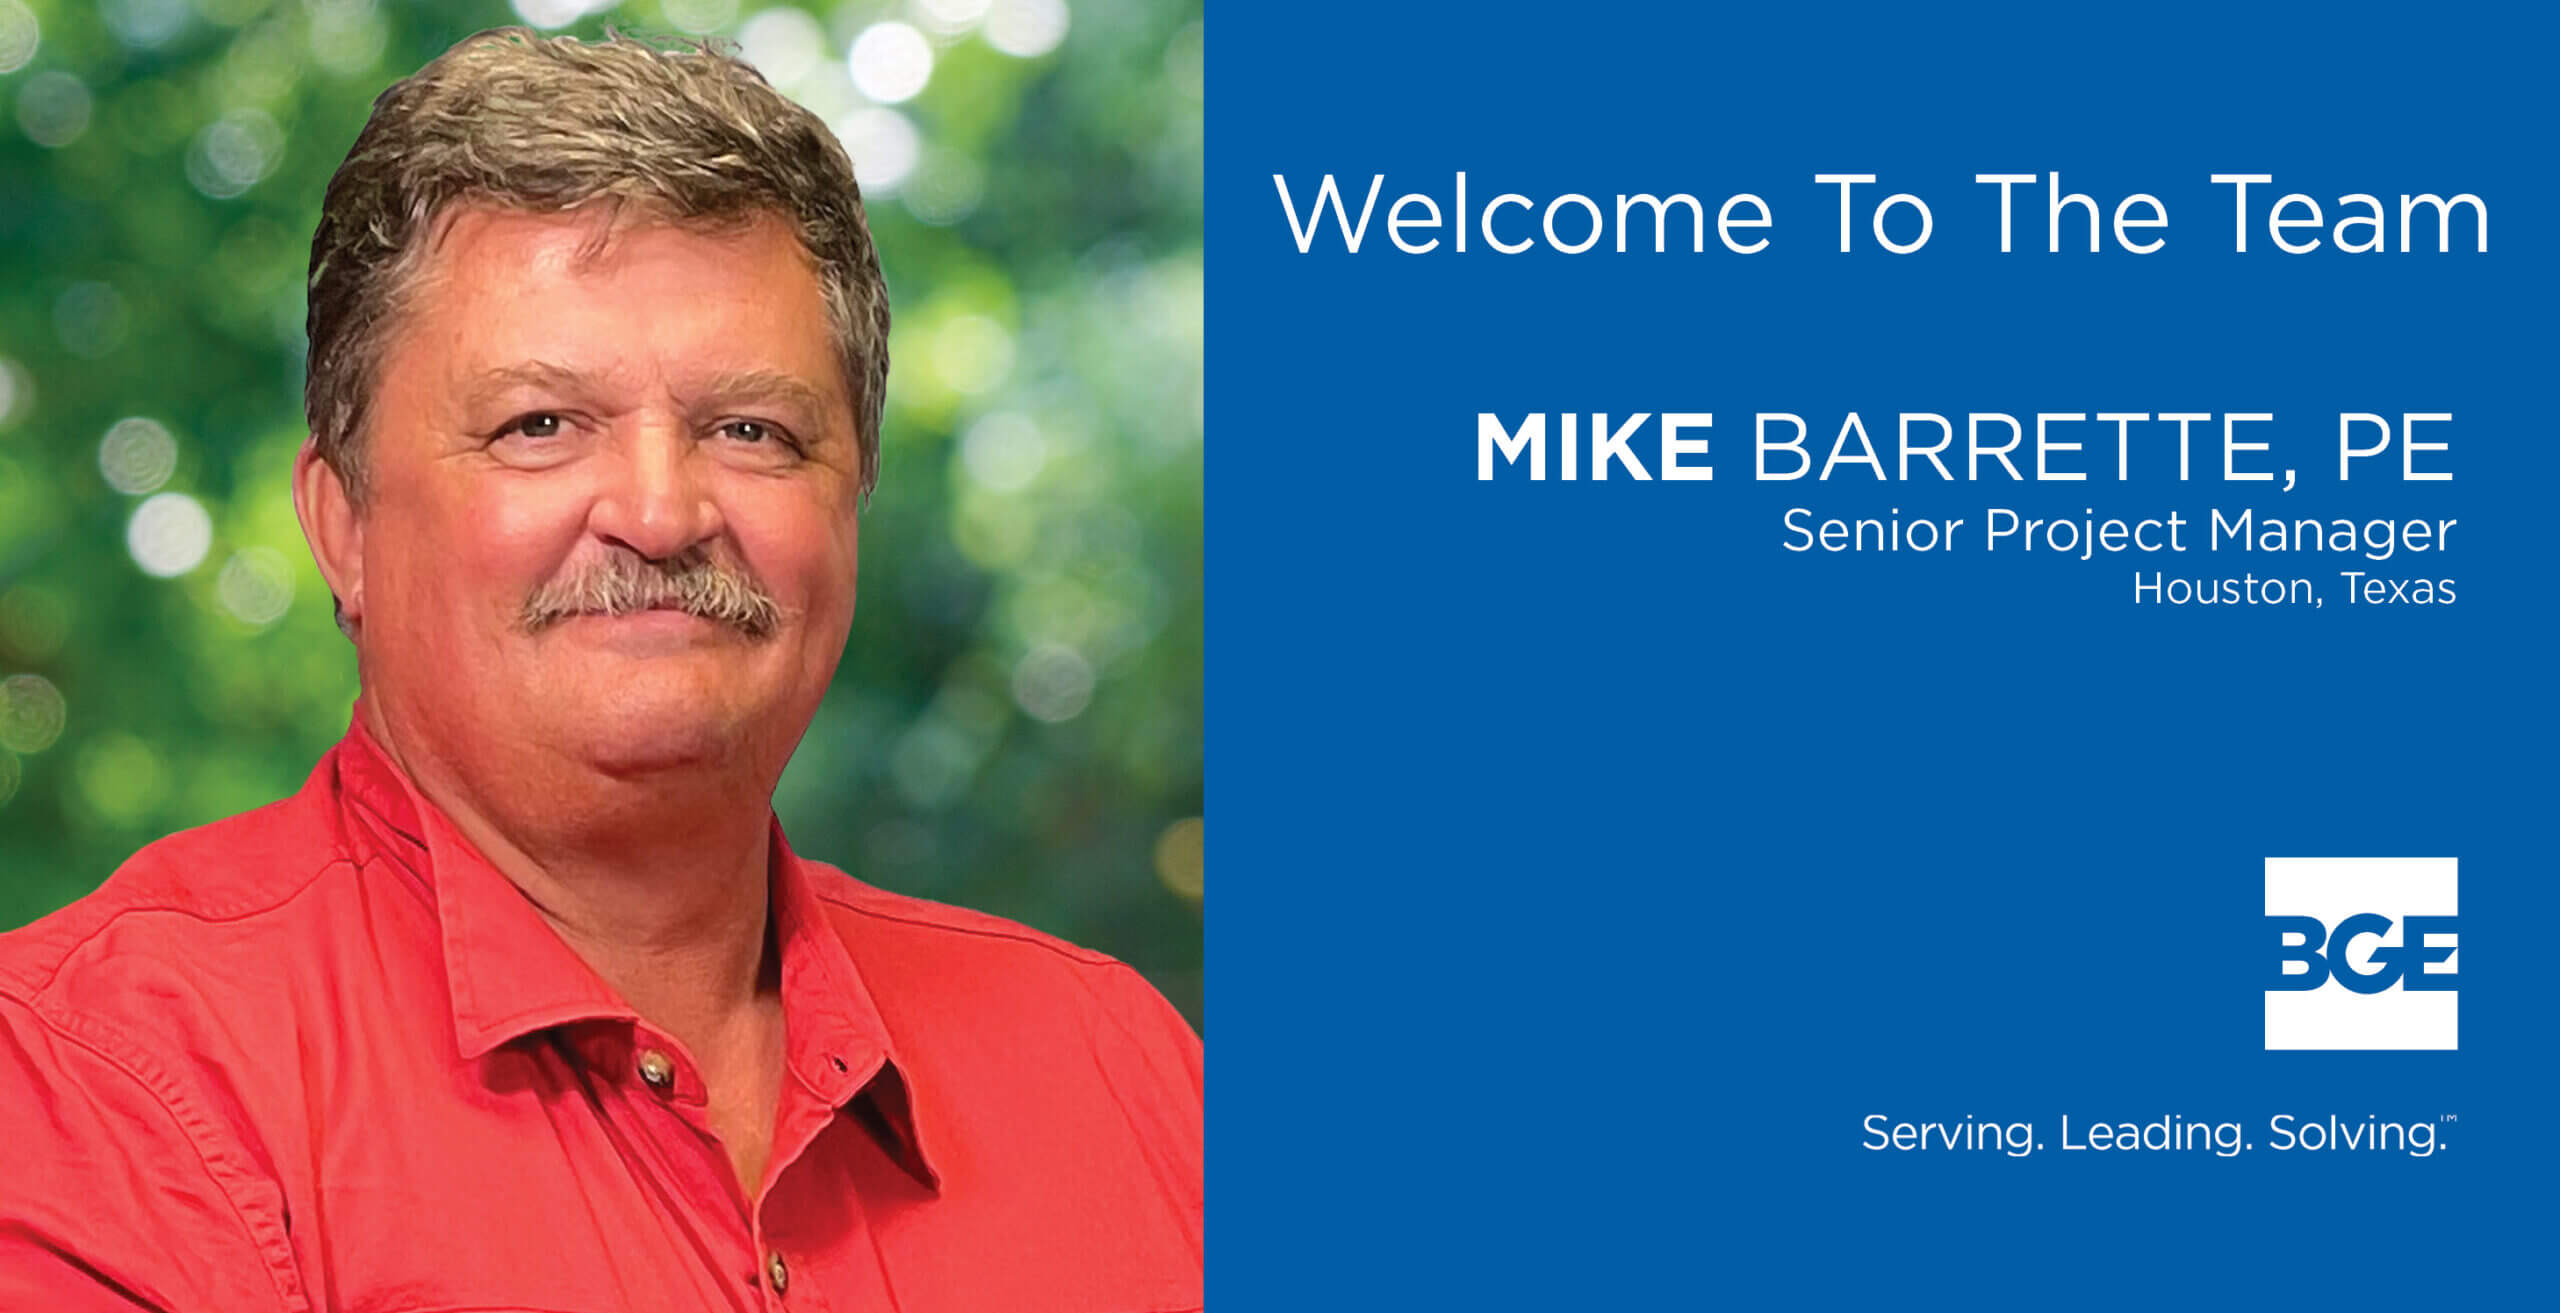 BGE Welcomes Mike Barrette as Senior Project Manager